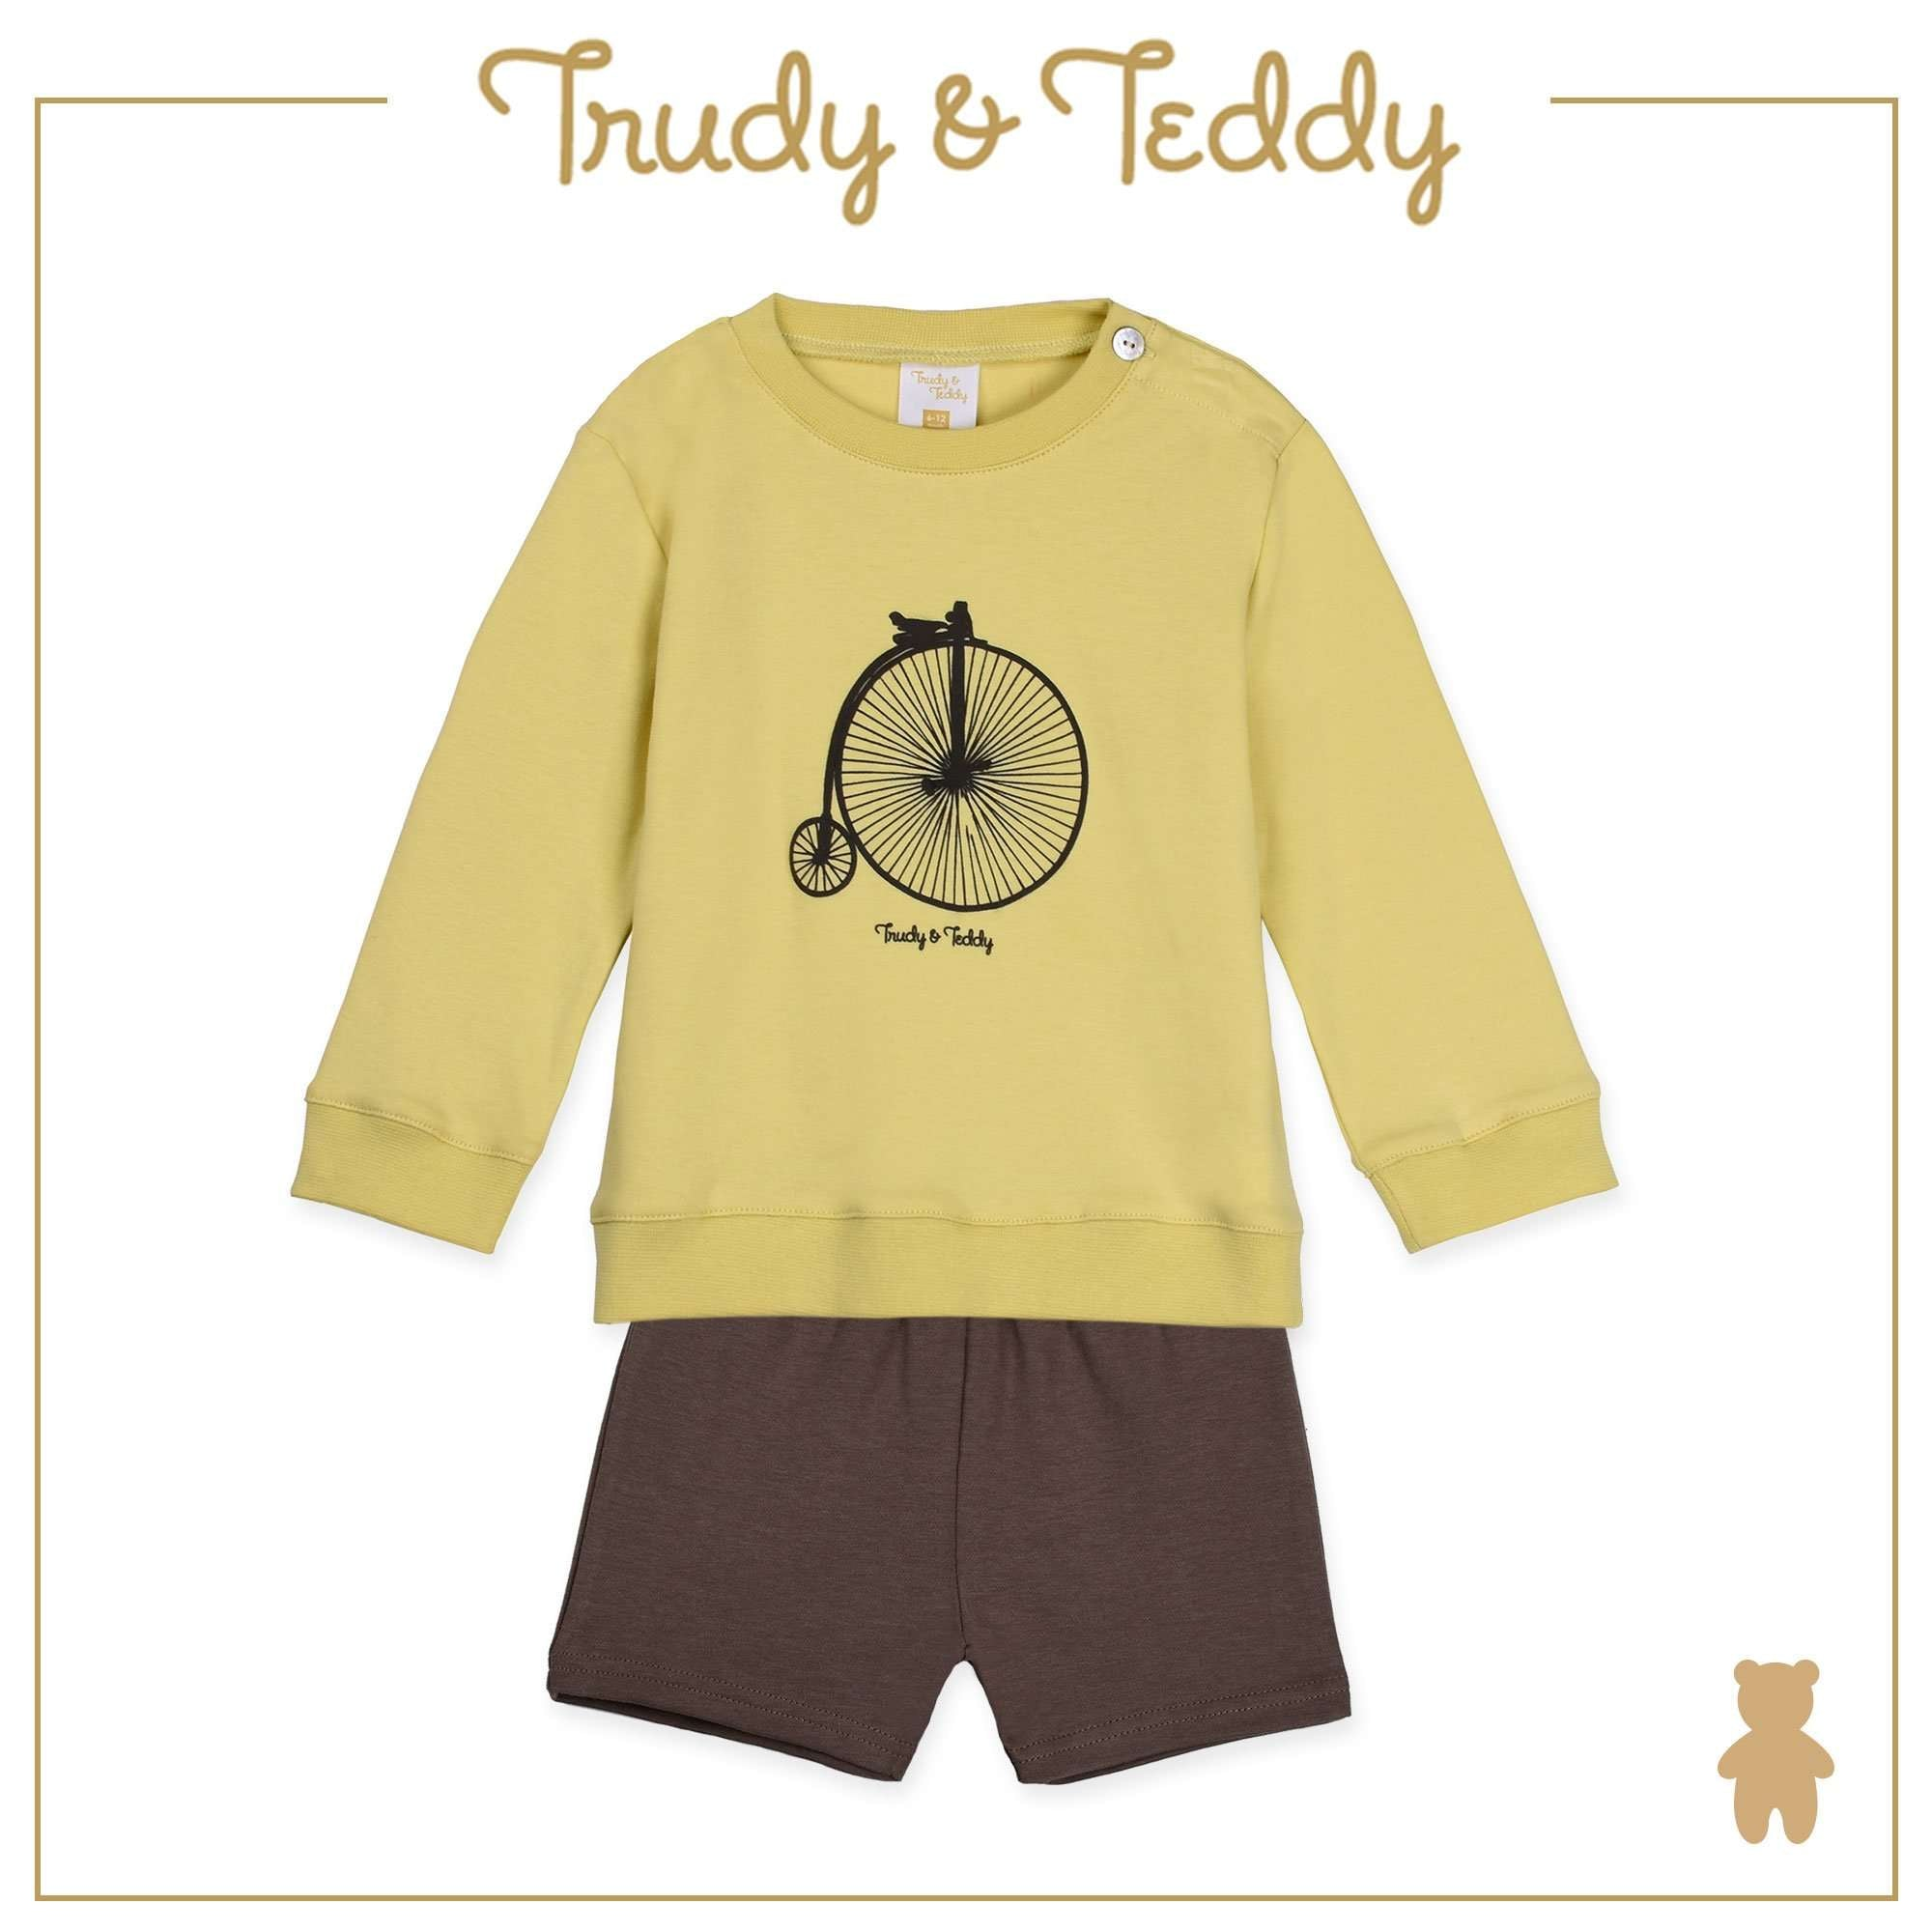 Trudy & Teddy Baby to Kid Boy Long Sleeve Bermuda Suit - Yellow T922103-4316-N5 : Buy Trudy & Teddy online at CMG.MY